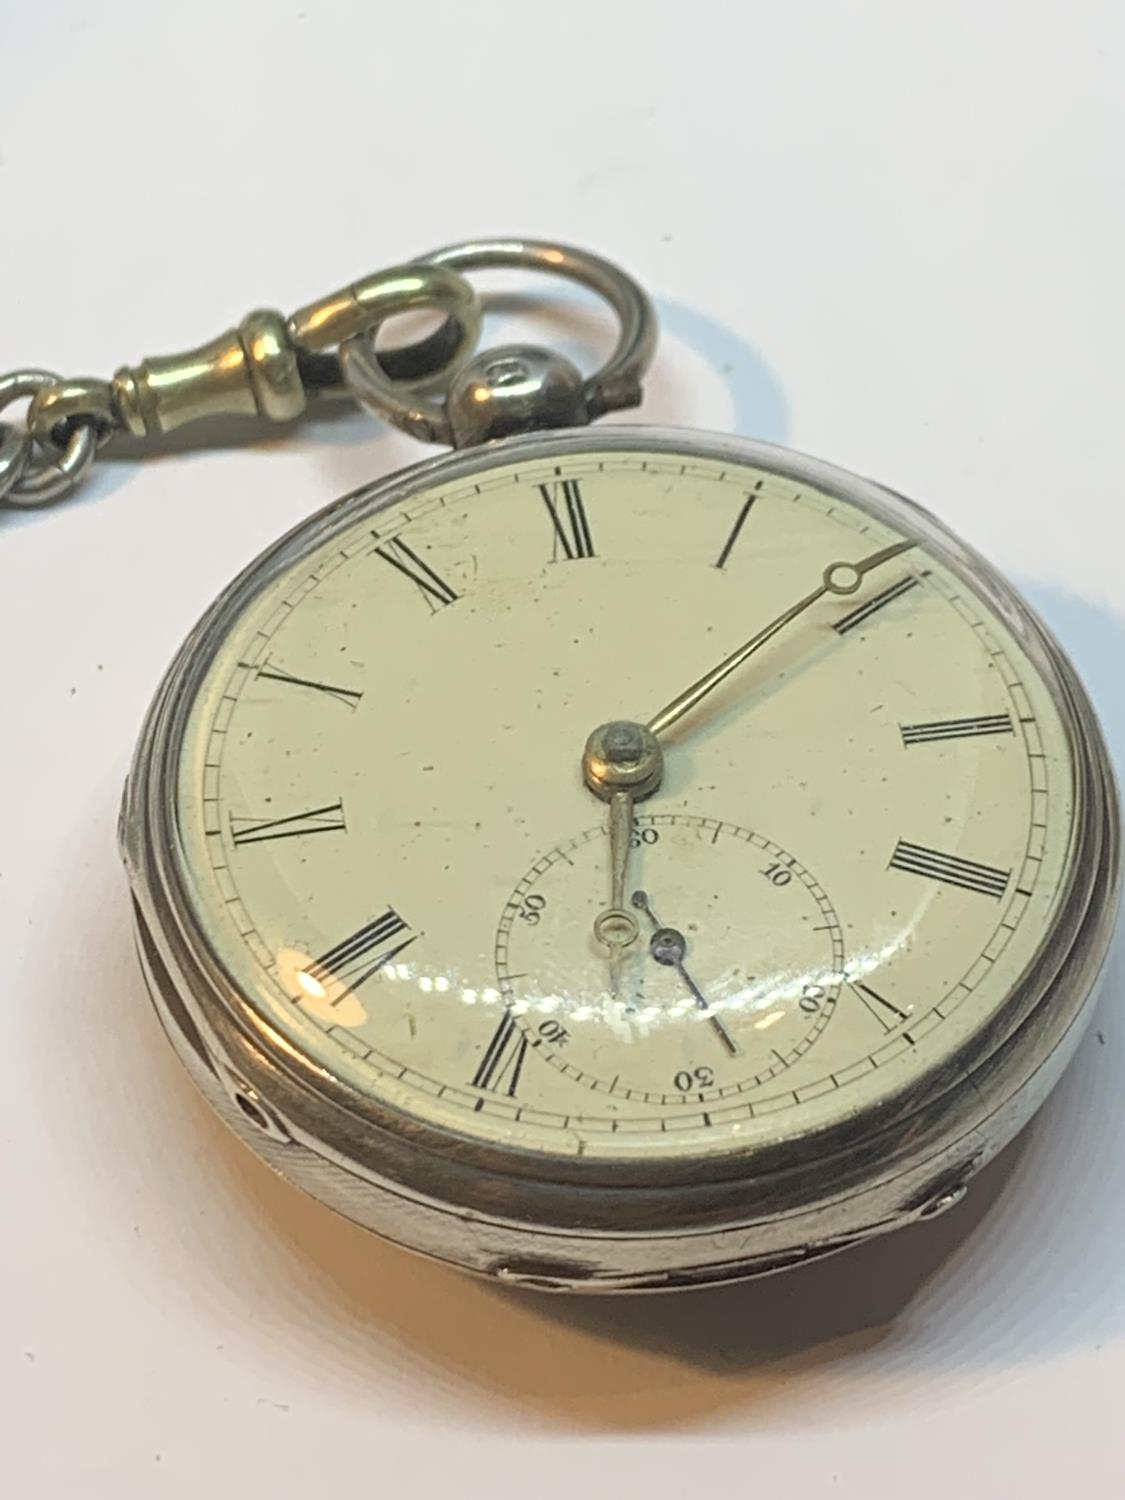 A HALLMARKED LONDON SILVER POCKET WATCH WITH ALBERT CHAIN AND FOBS IN A PRESENTATION BOX - Image 2 of 5